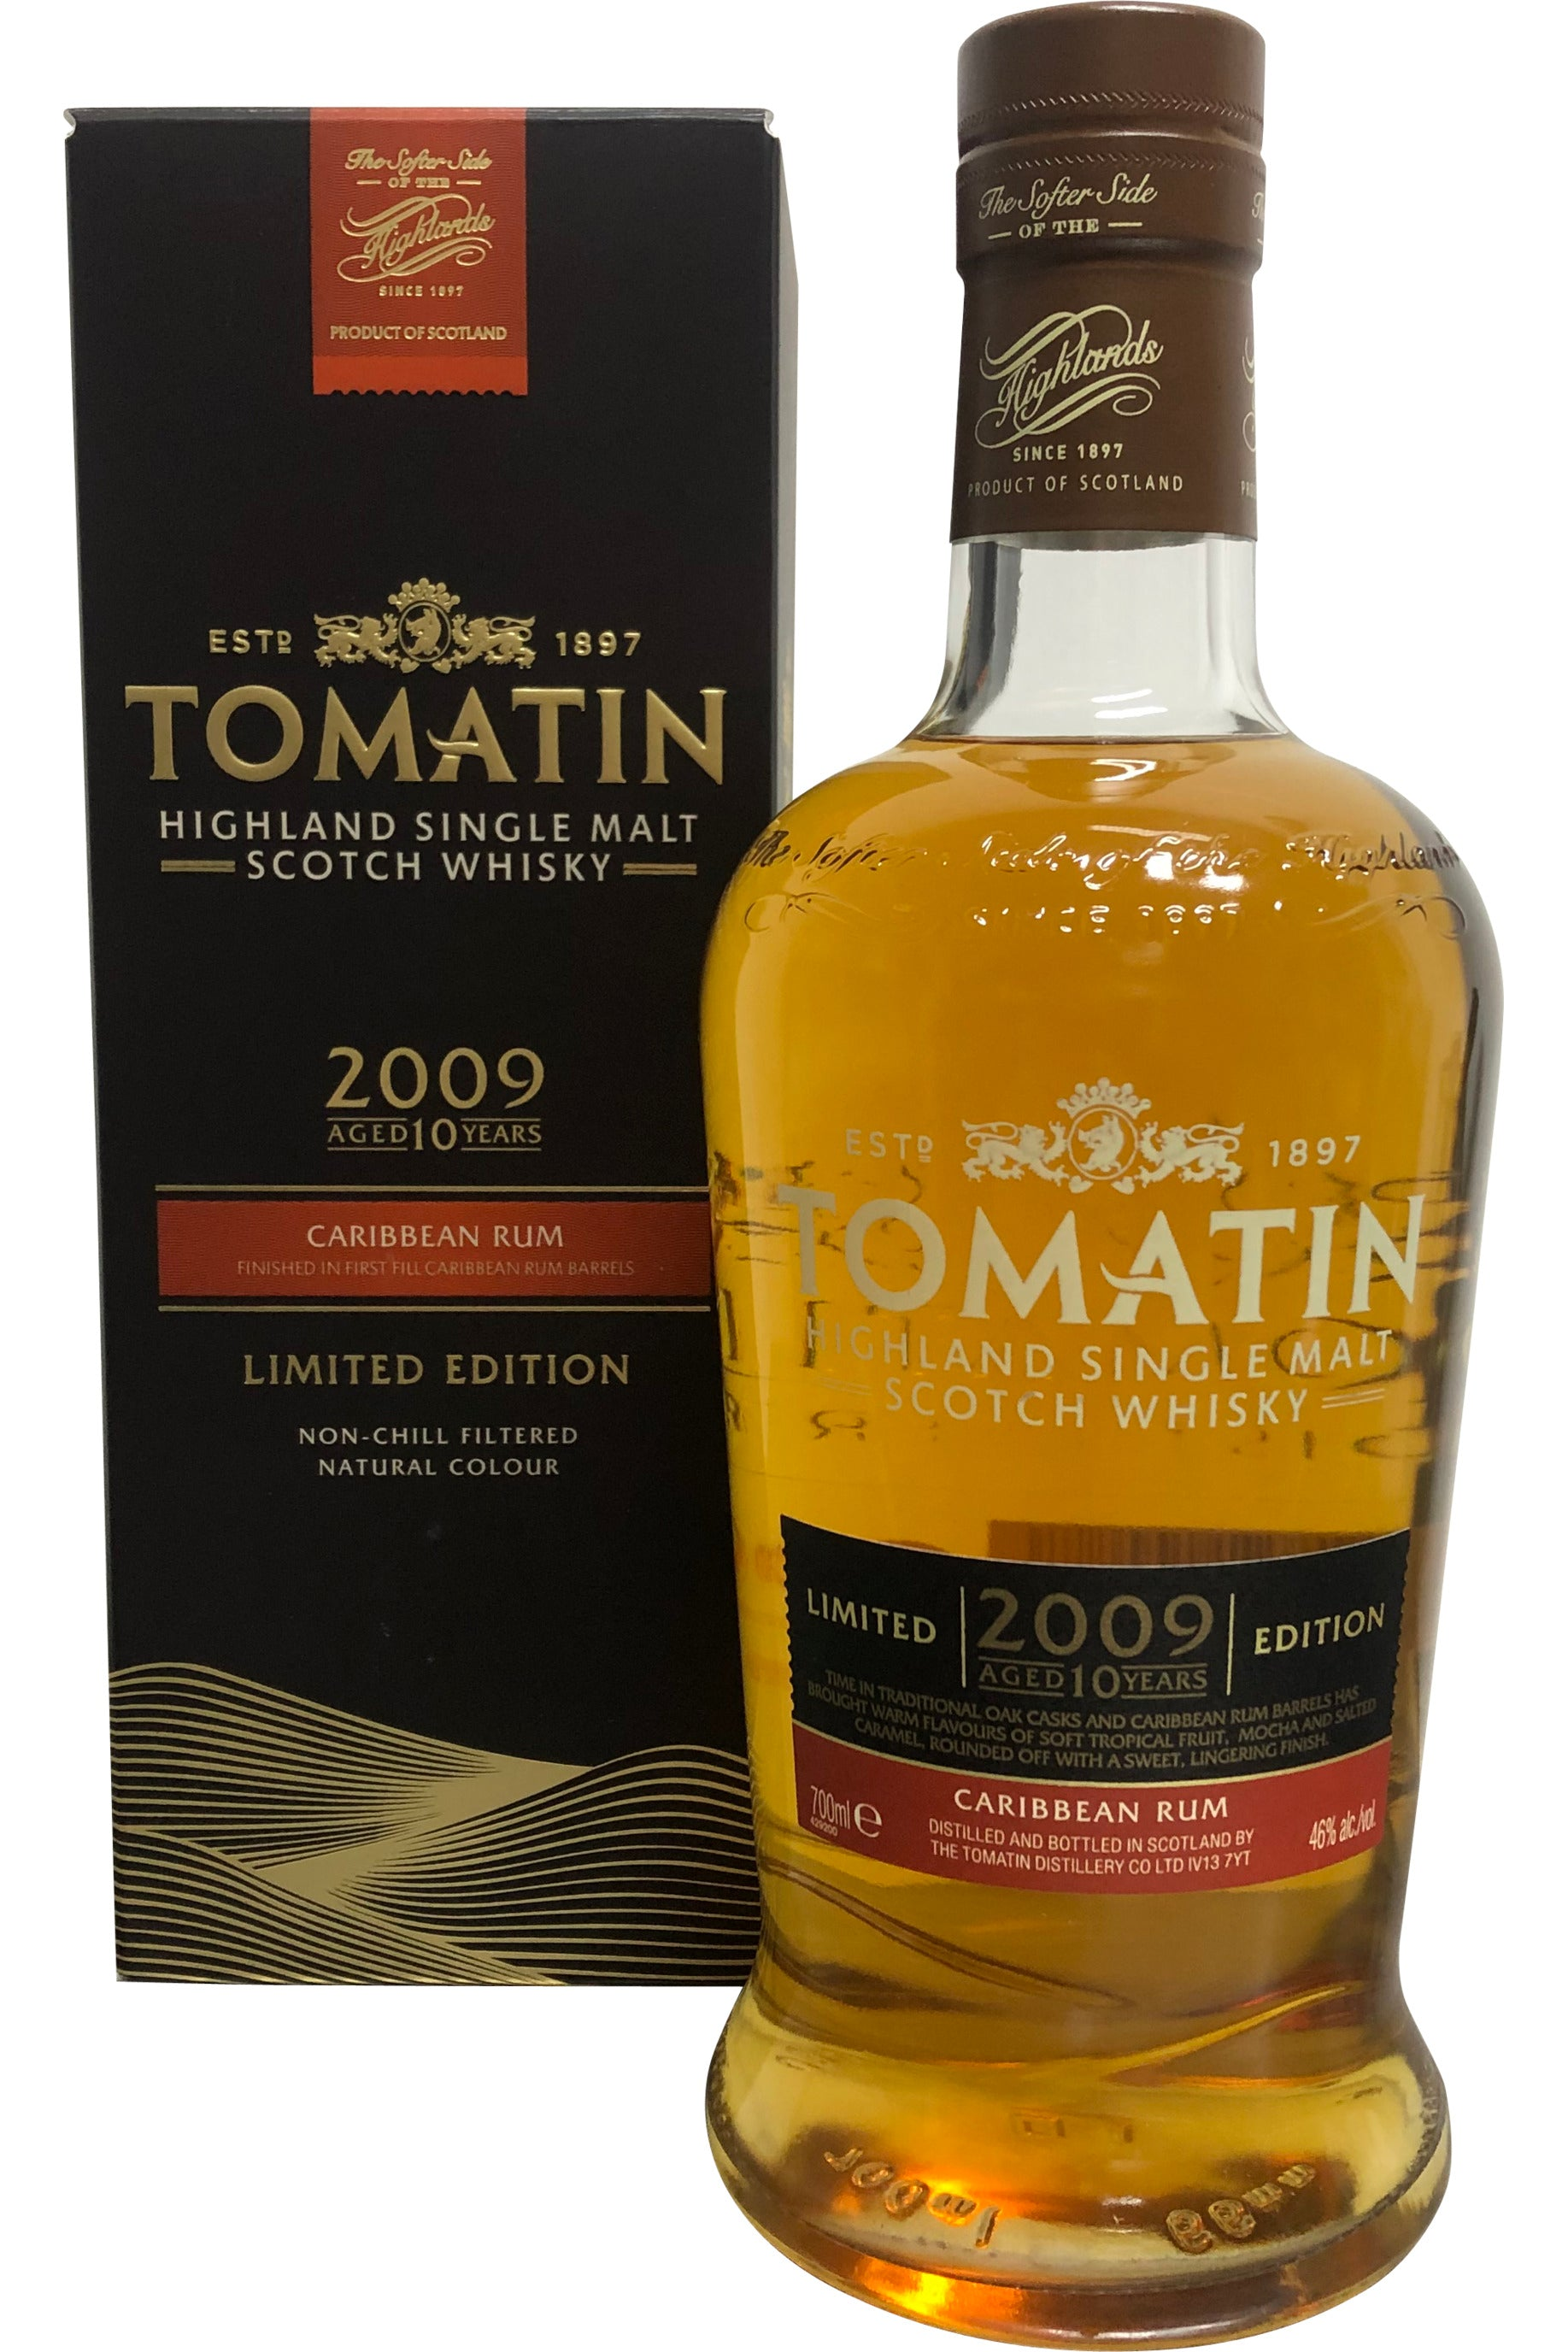 Tomatin 2009 Caribbean Rum Finish 10 Year Old 46% 700ml